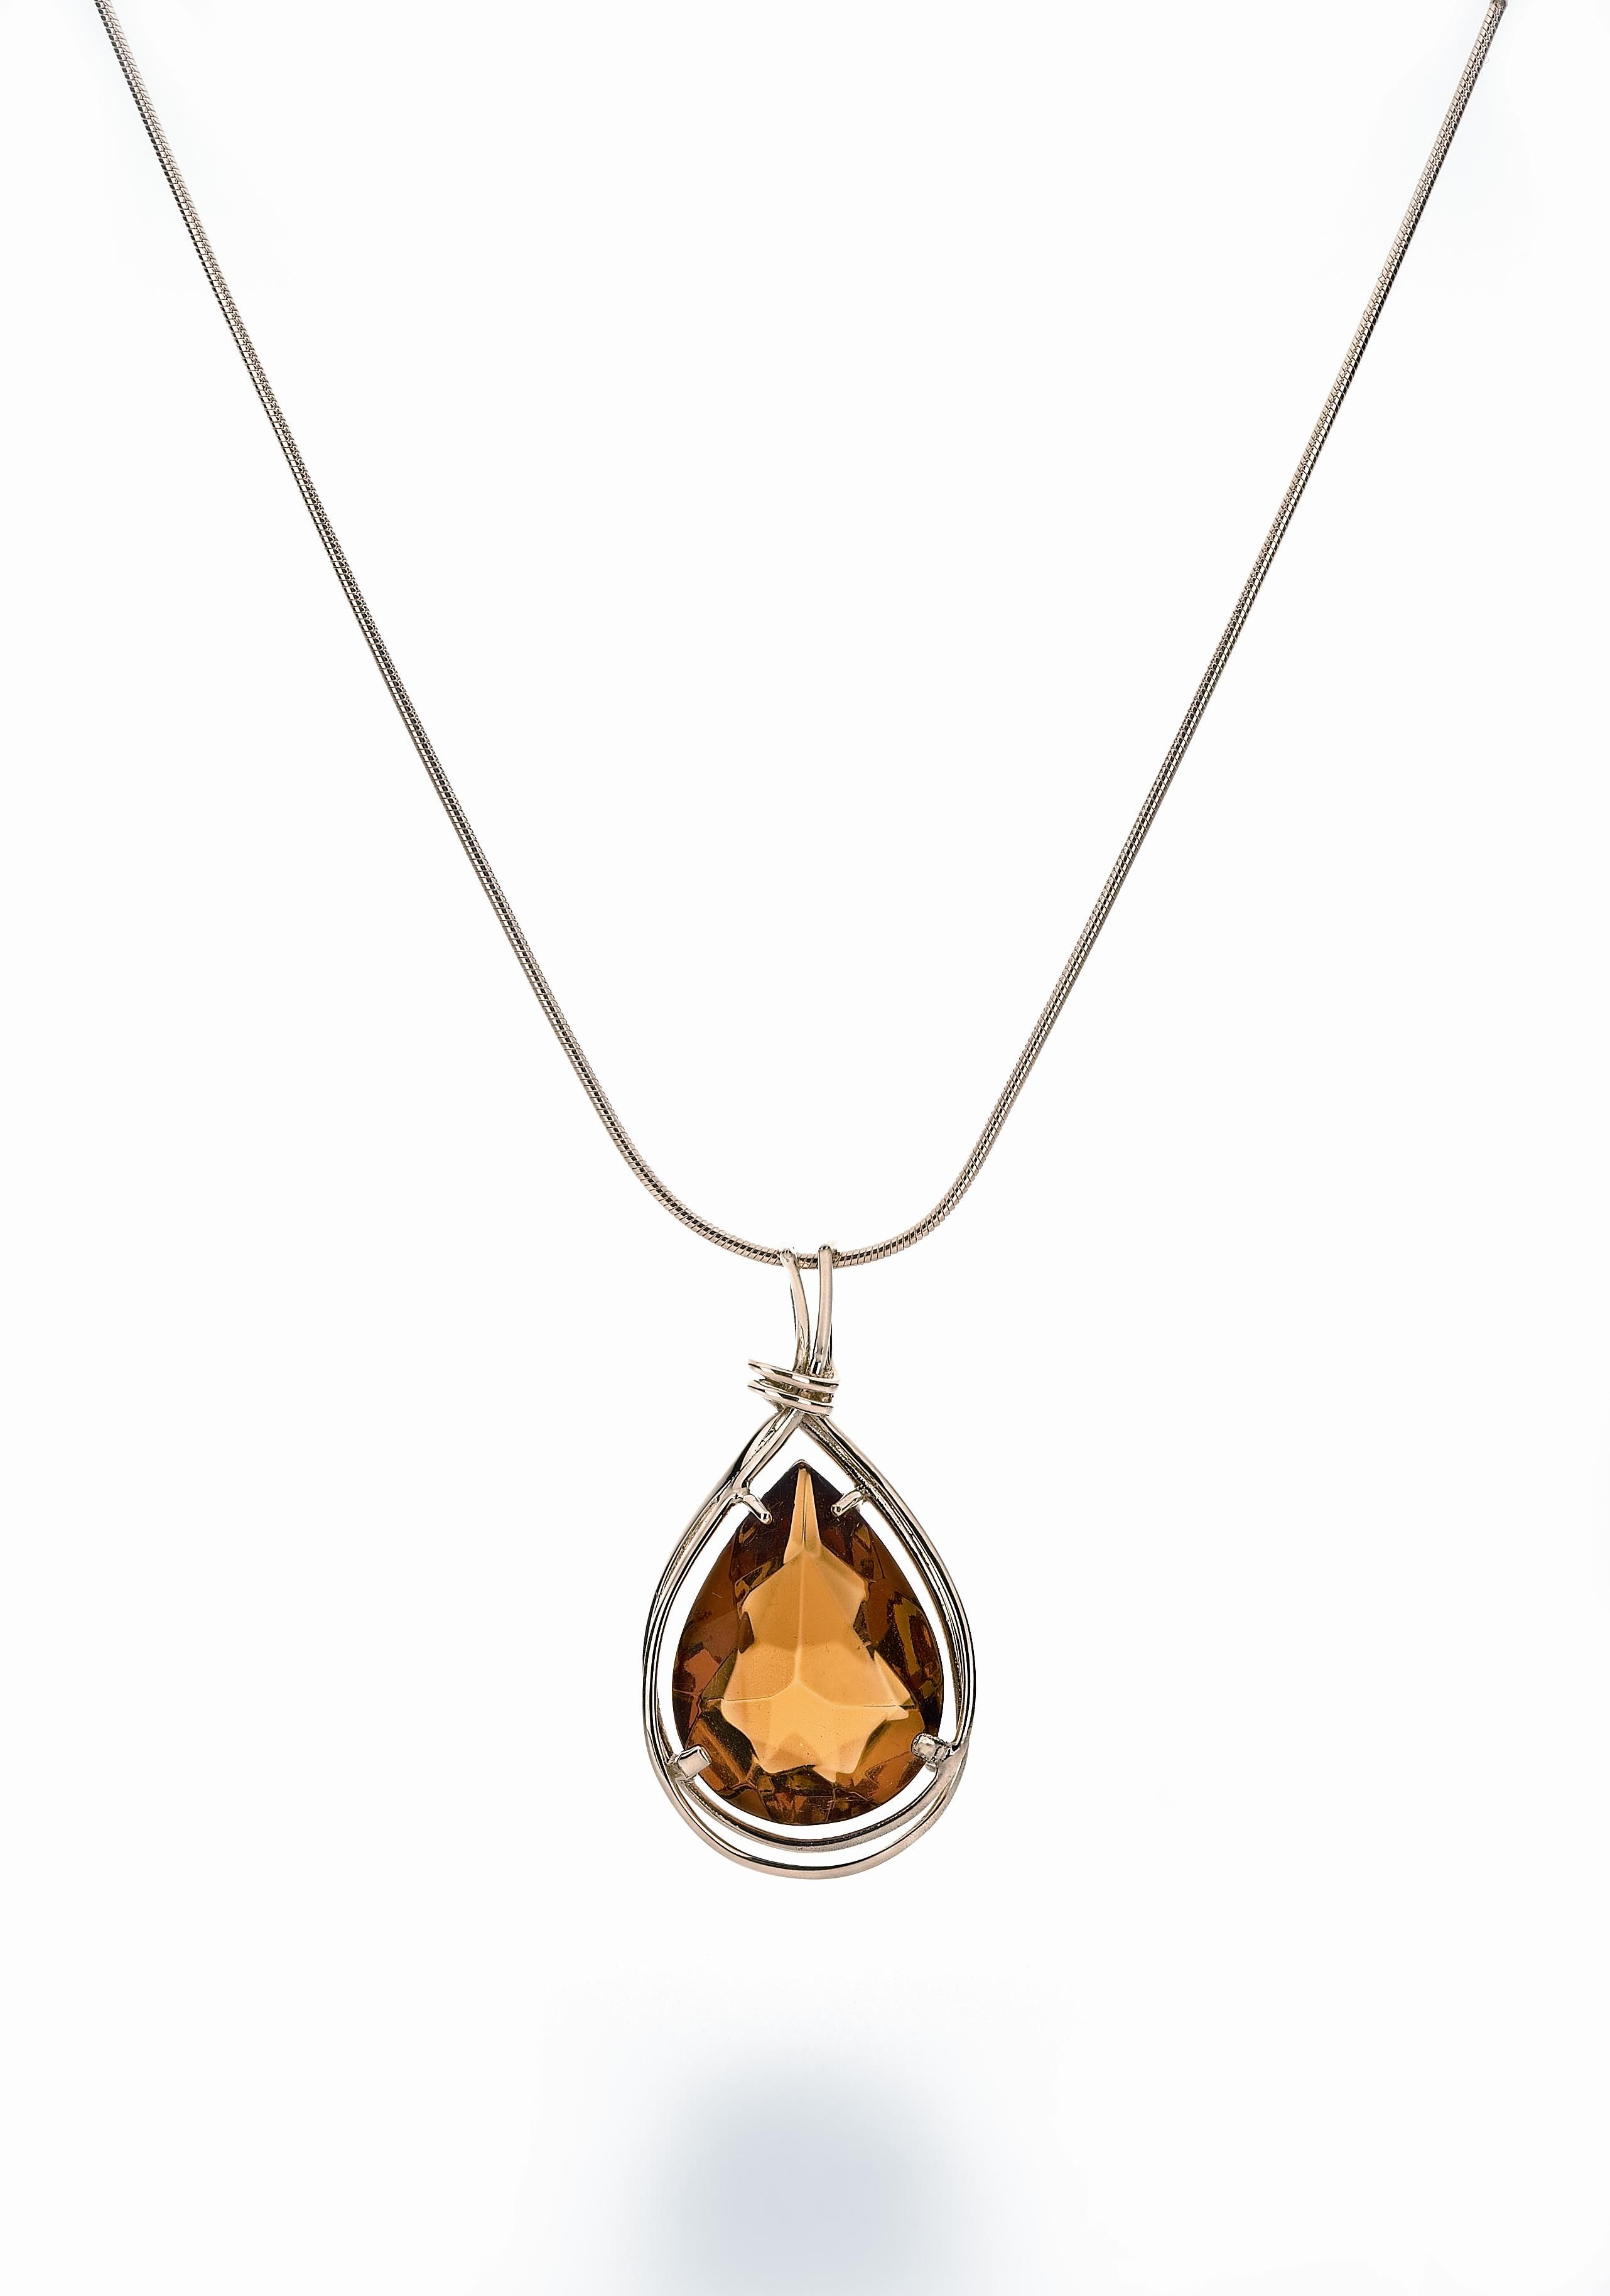 House of Amber A 14 carat white gold pendant with cognac amber